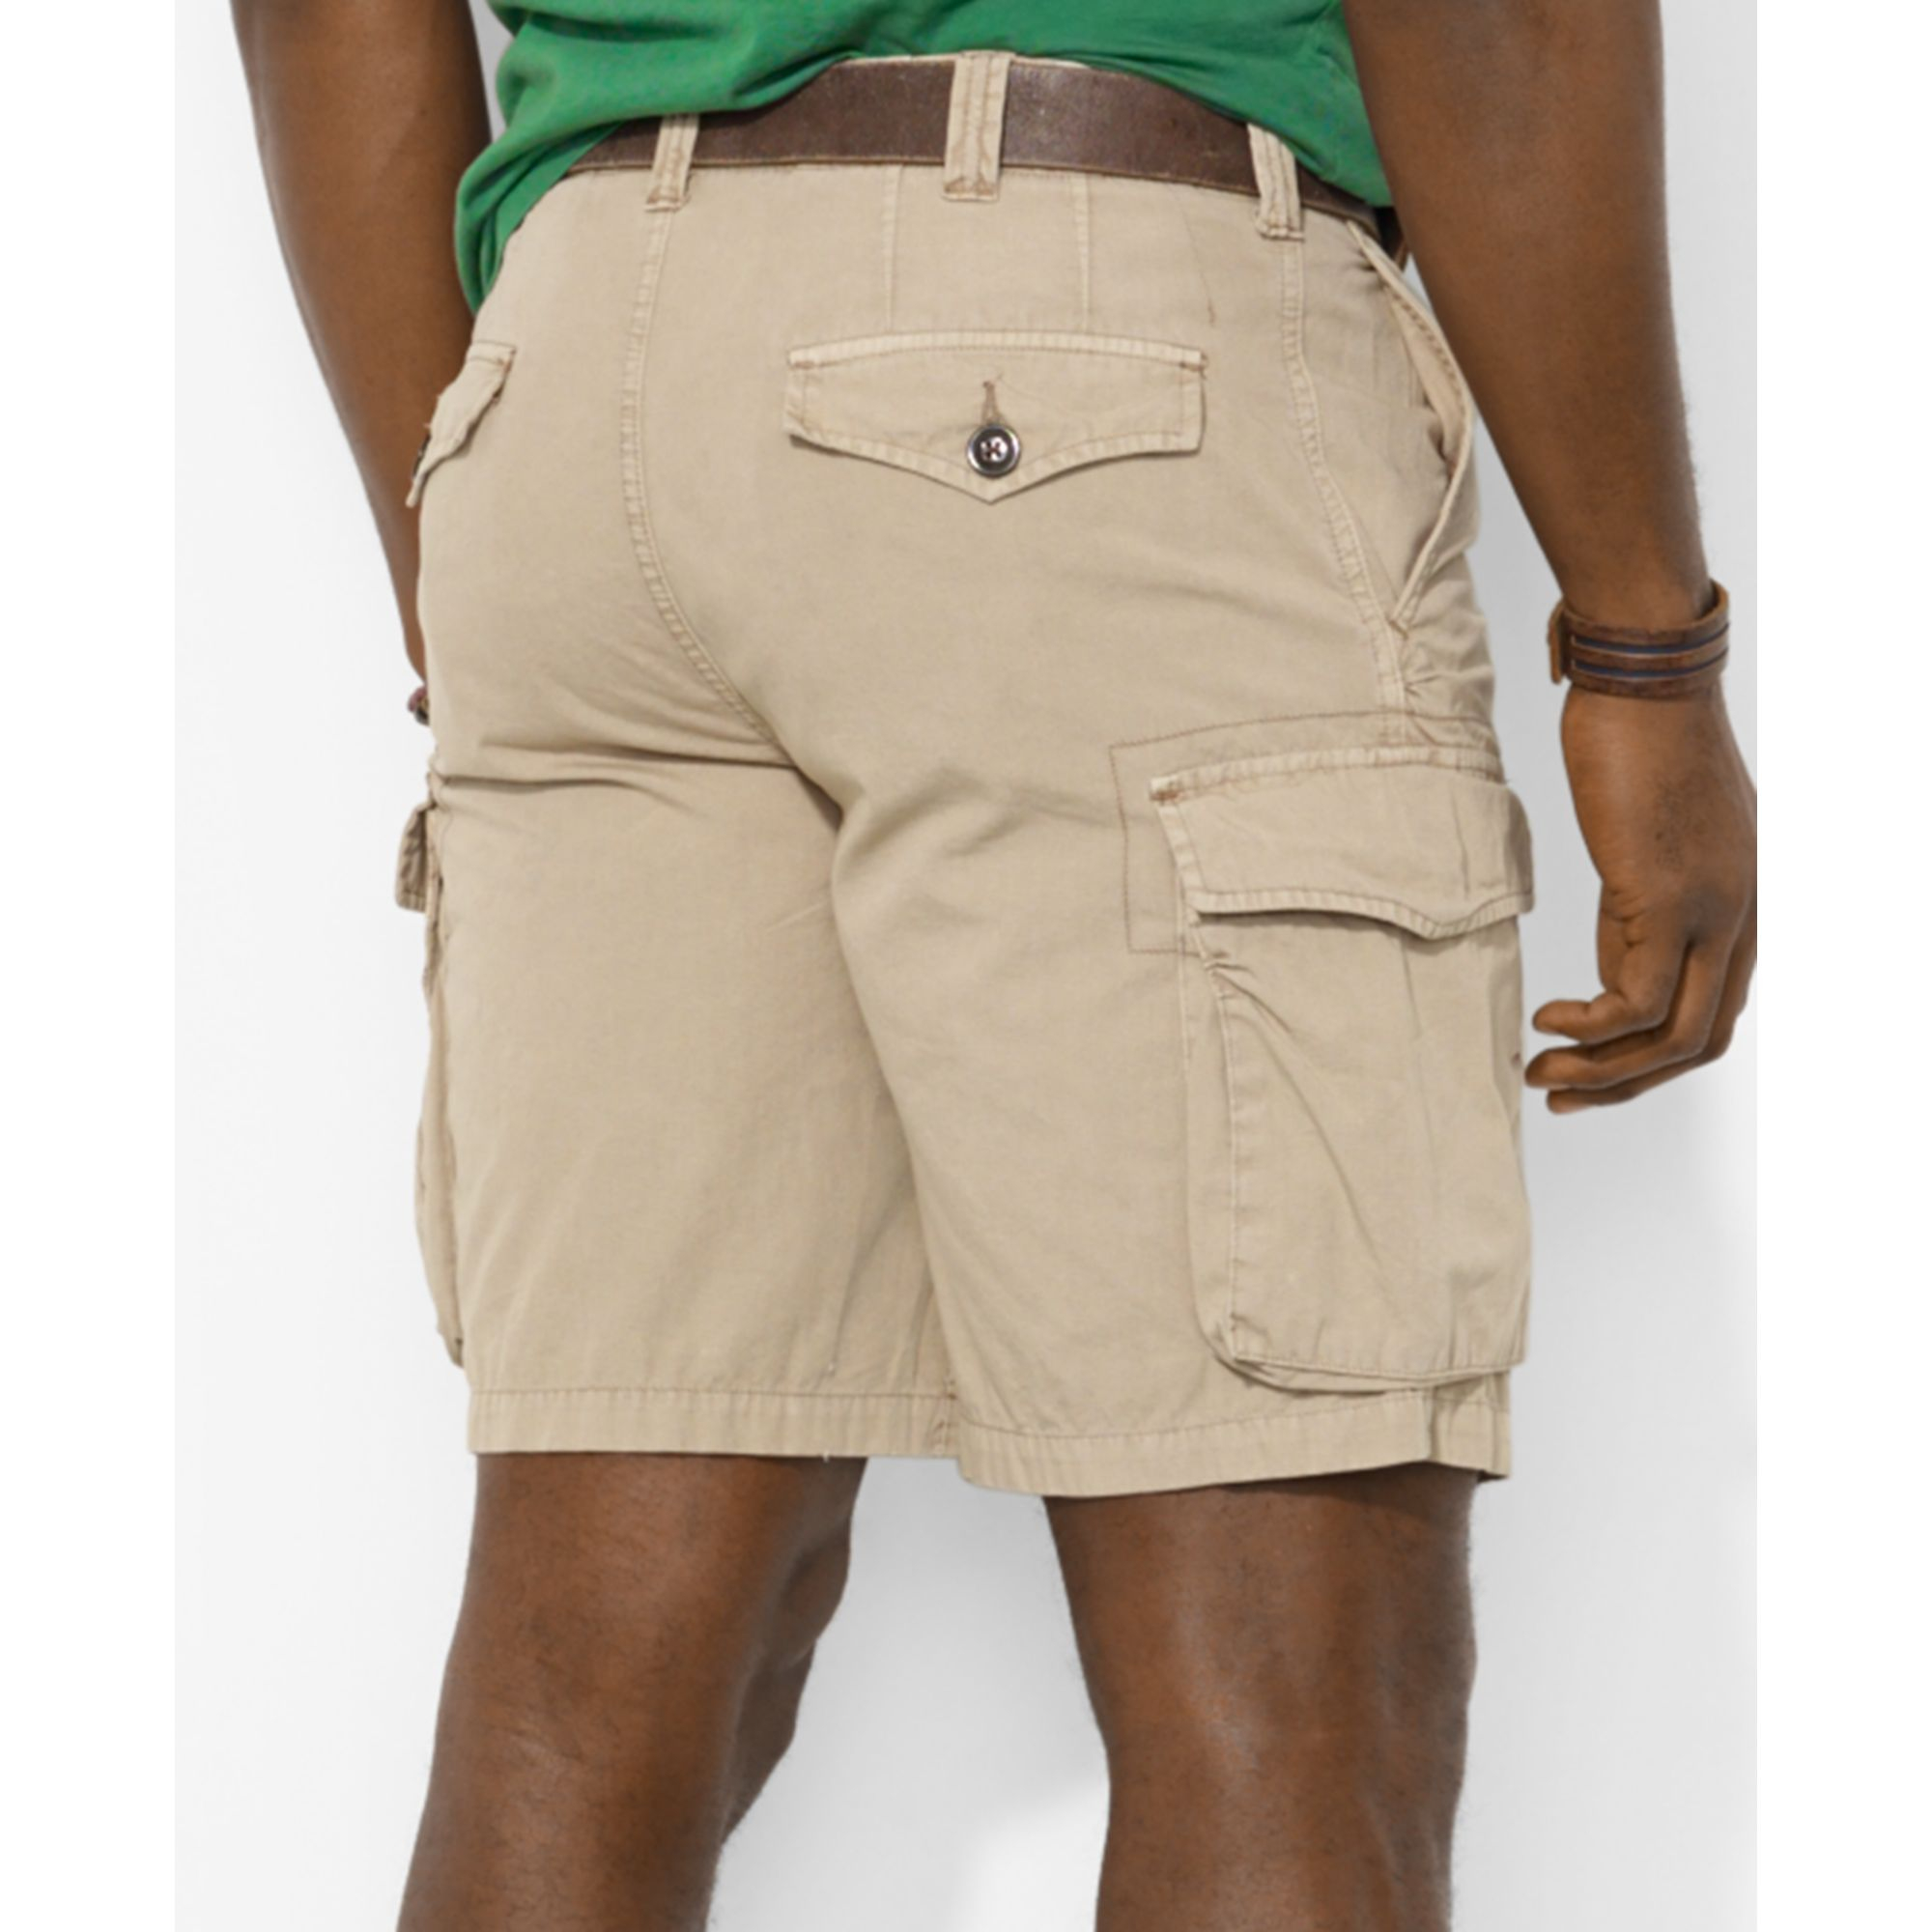 575e16a8c3 ... cheapest lyst polo ralph lauren polo big and tall corporal cargo shorts  in 74738 fce07